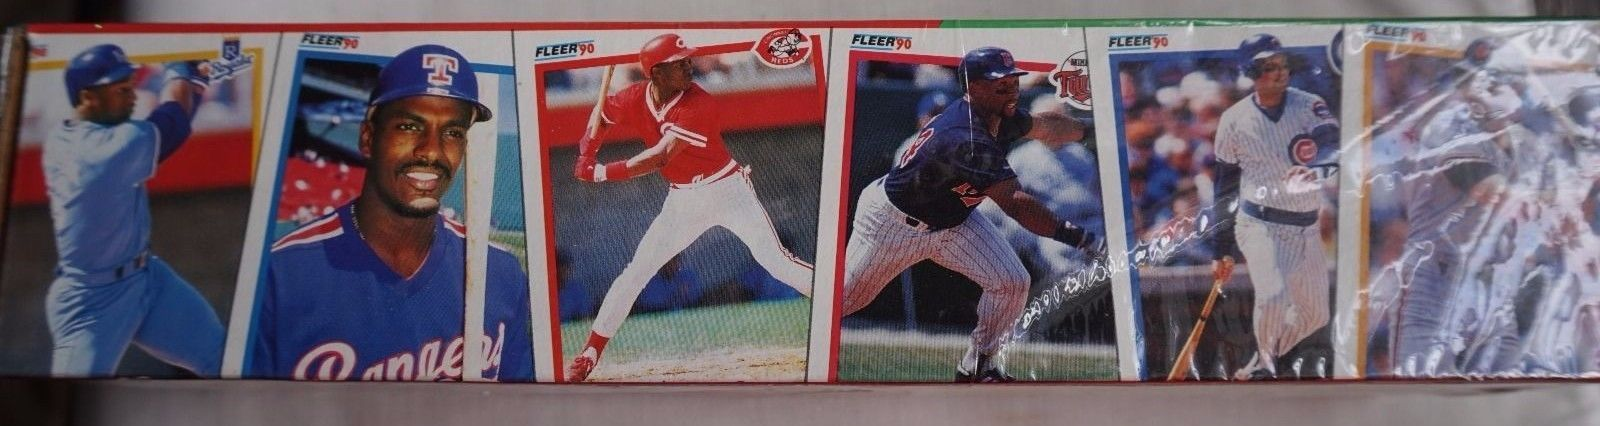 Fleer 1990 10th Anniversary Edition Factory Sealed Baseball Cards